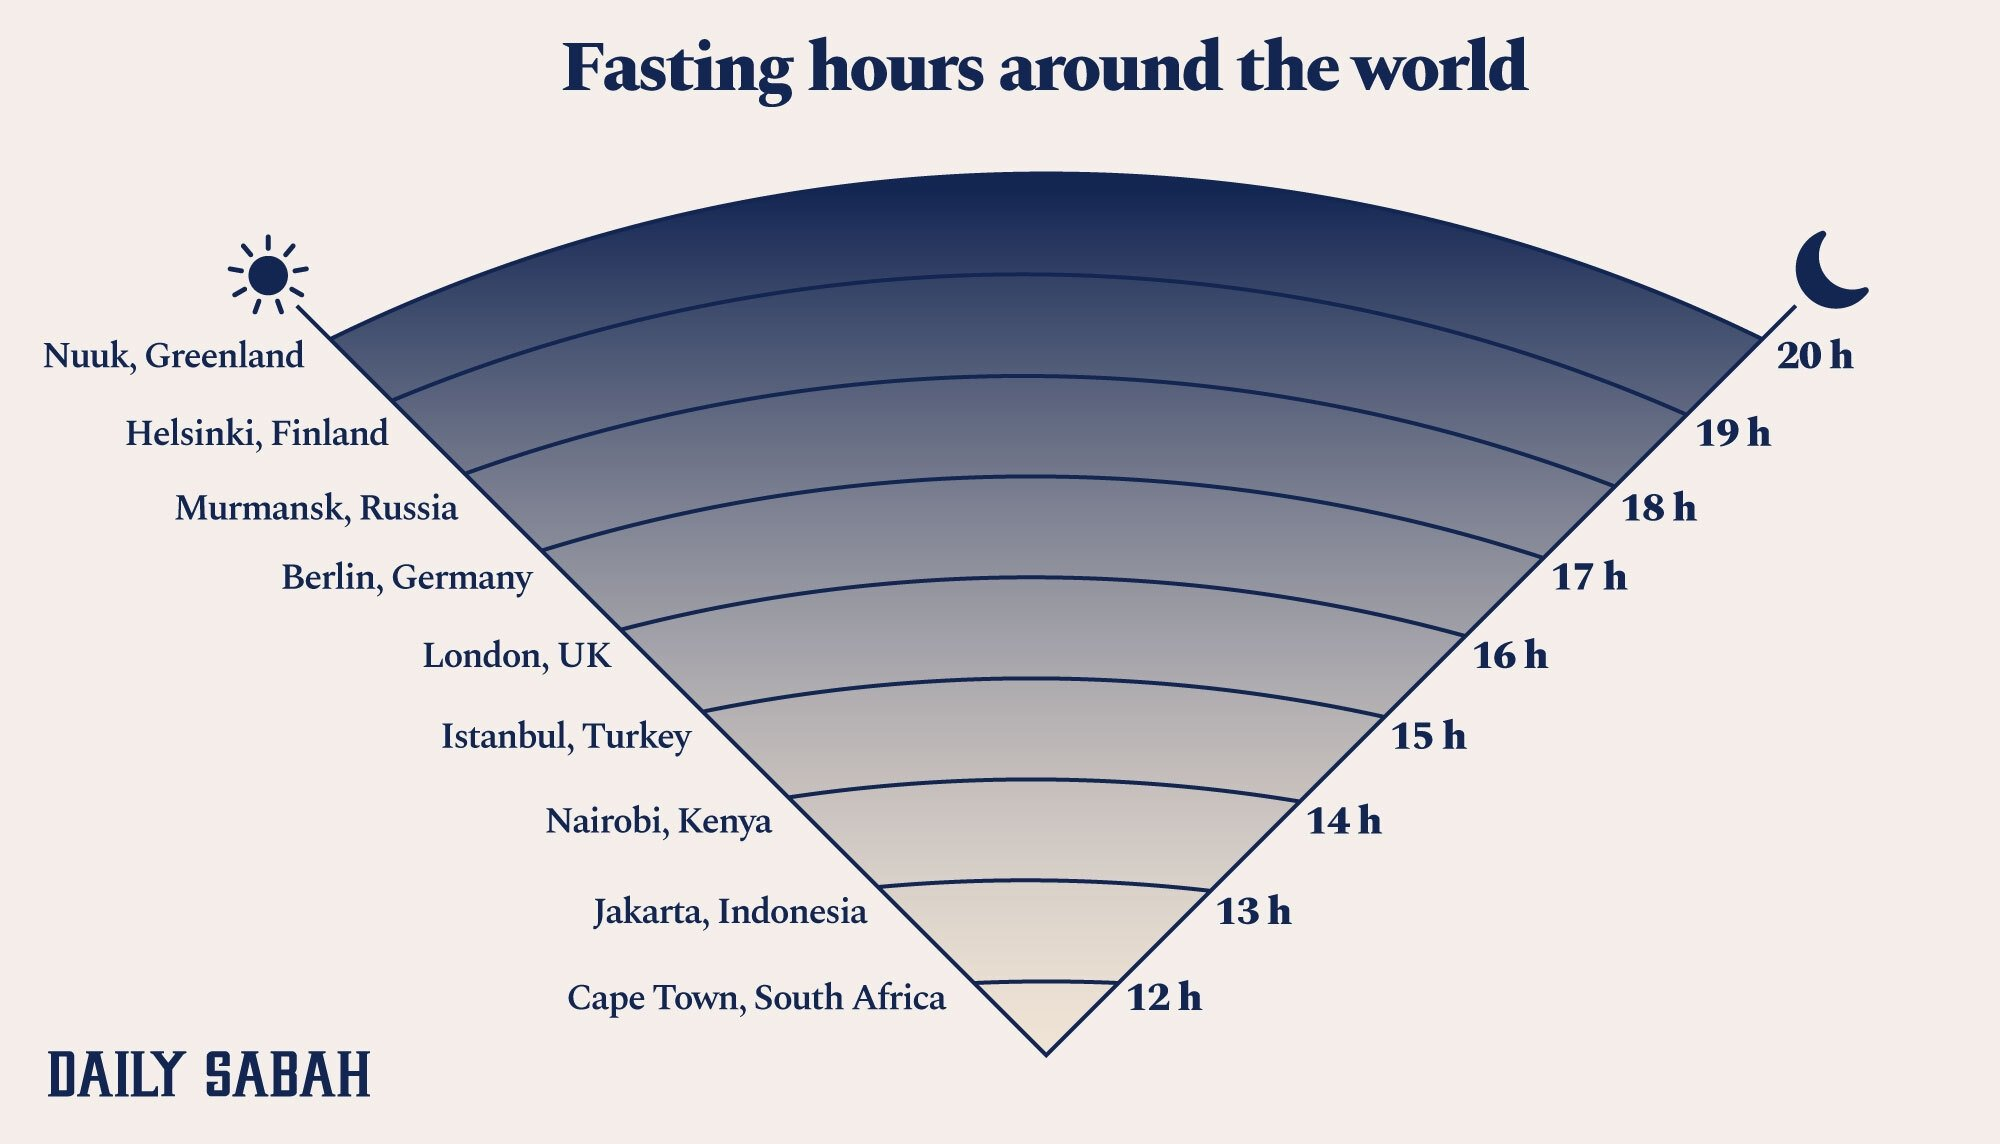 The longest and shortest fasting times for Muslims around the world in 2021. (Infographic by Daily Sabah)